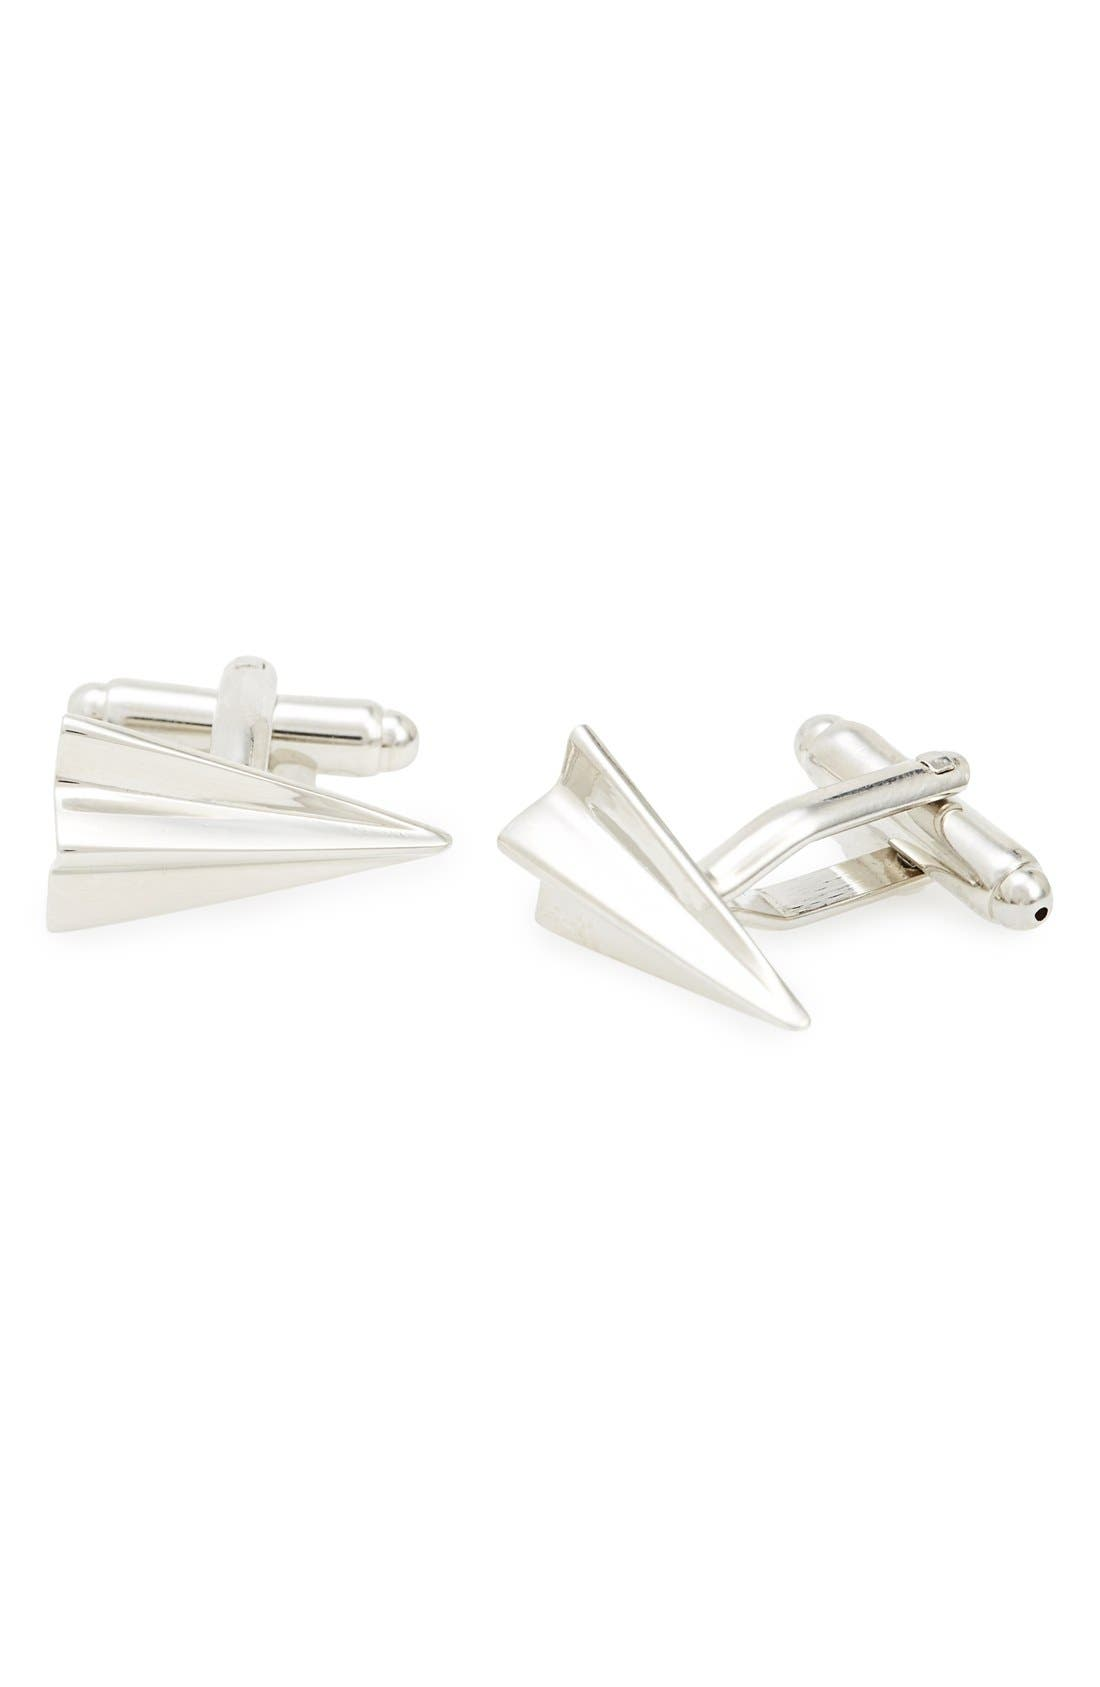 'Paper Airplane' Cuff Links,                         Main,                         color, Silver